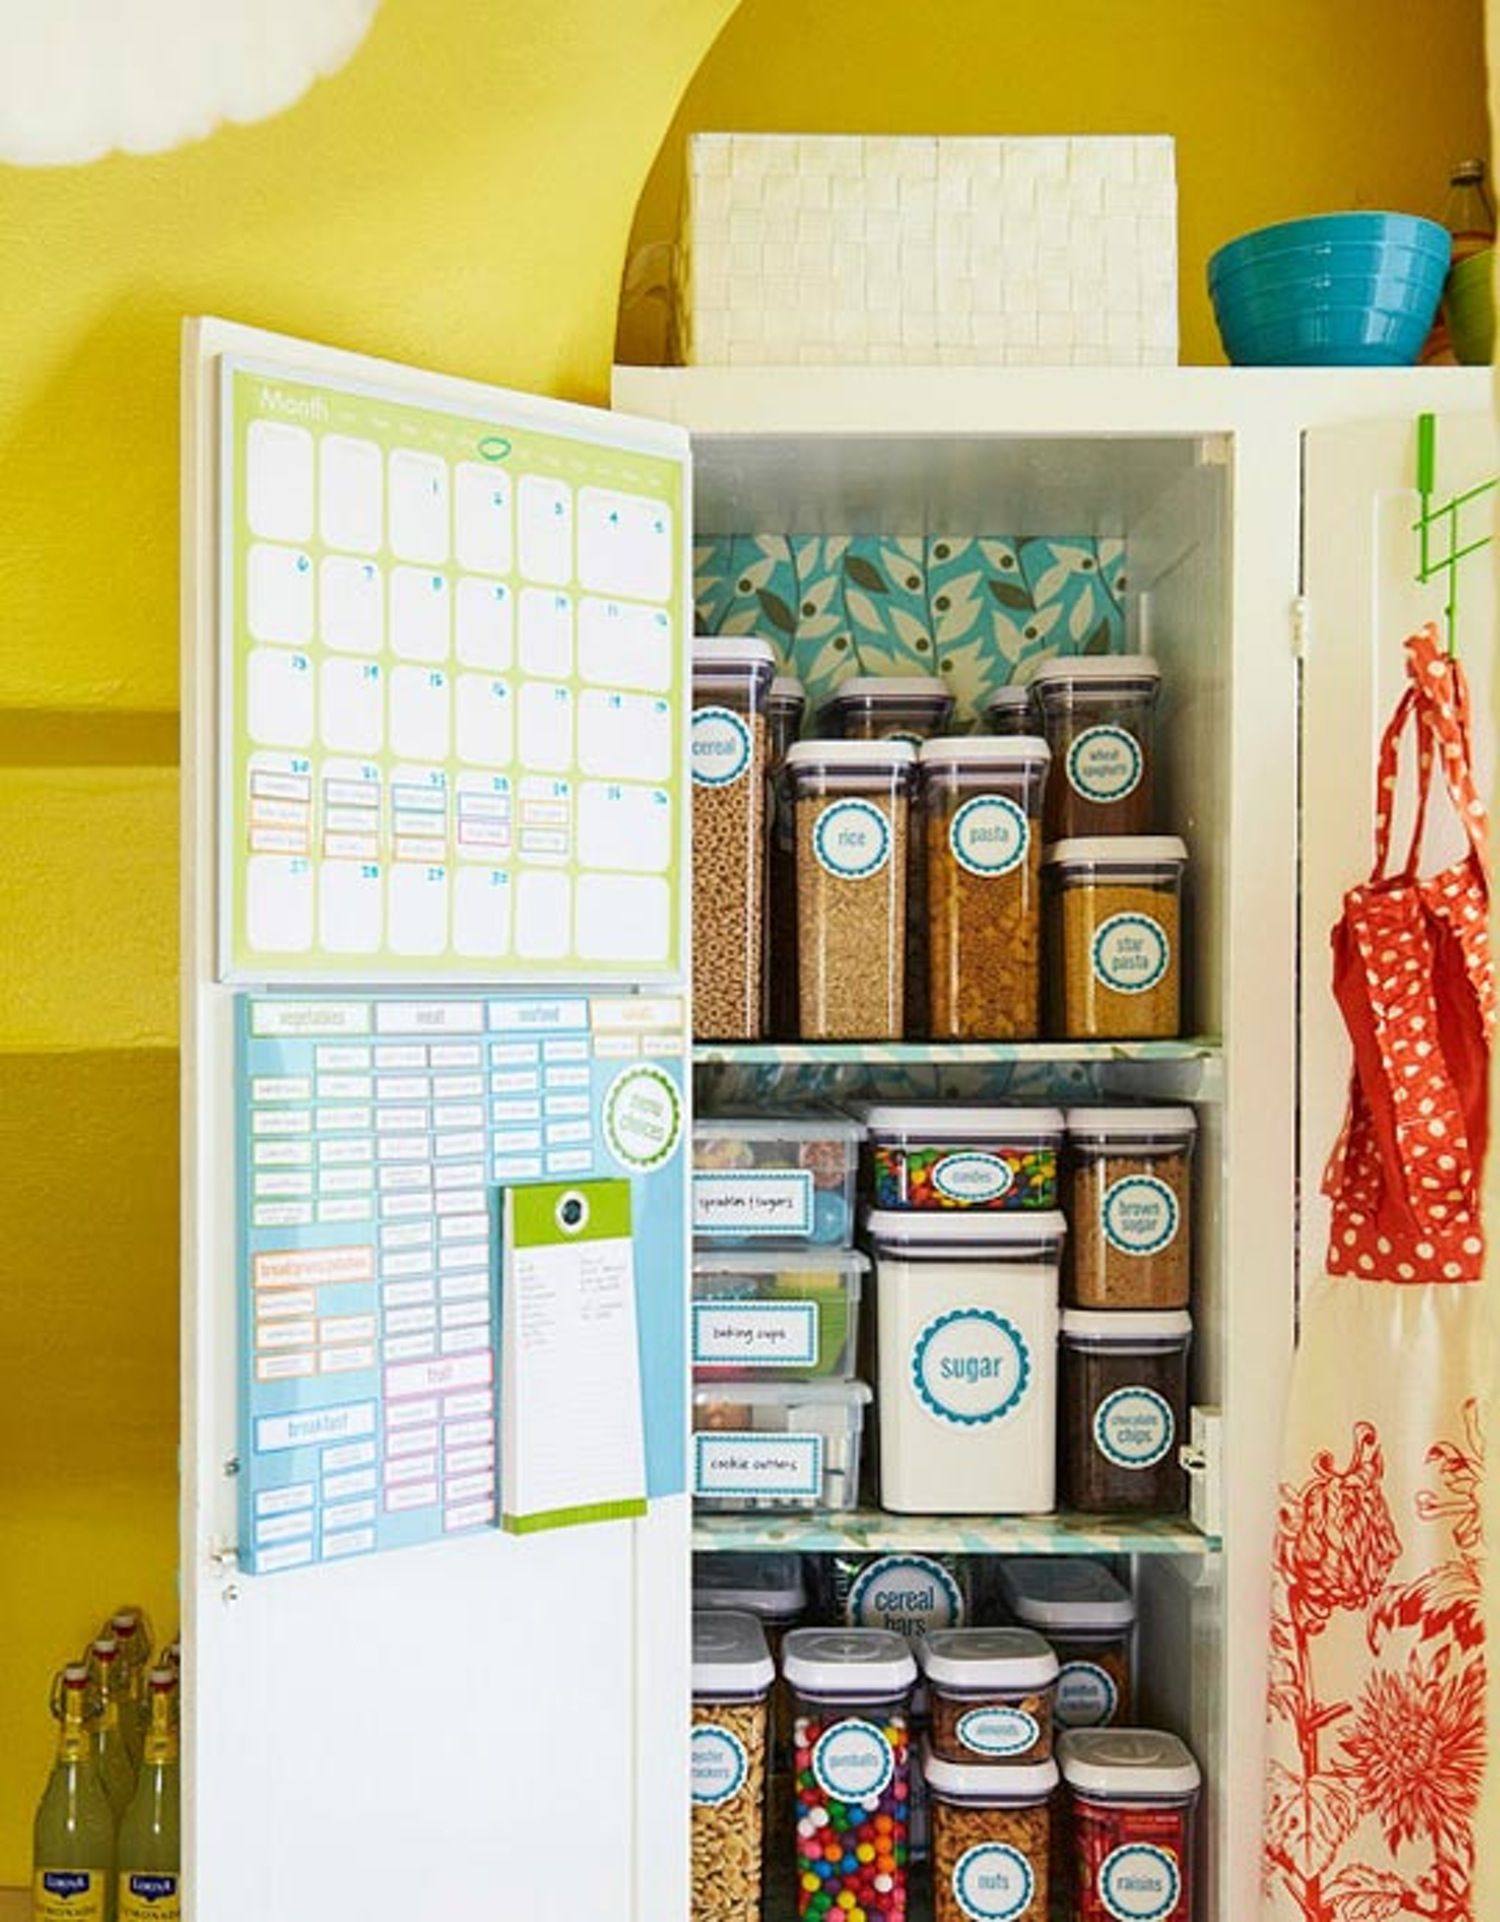 Good idea hang a meal calendar and grocery list inside the pantry